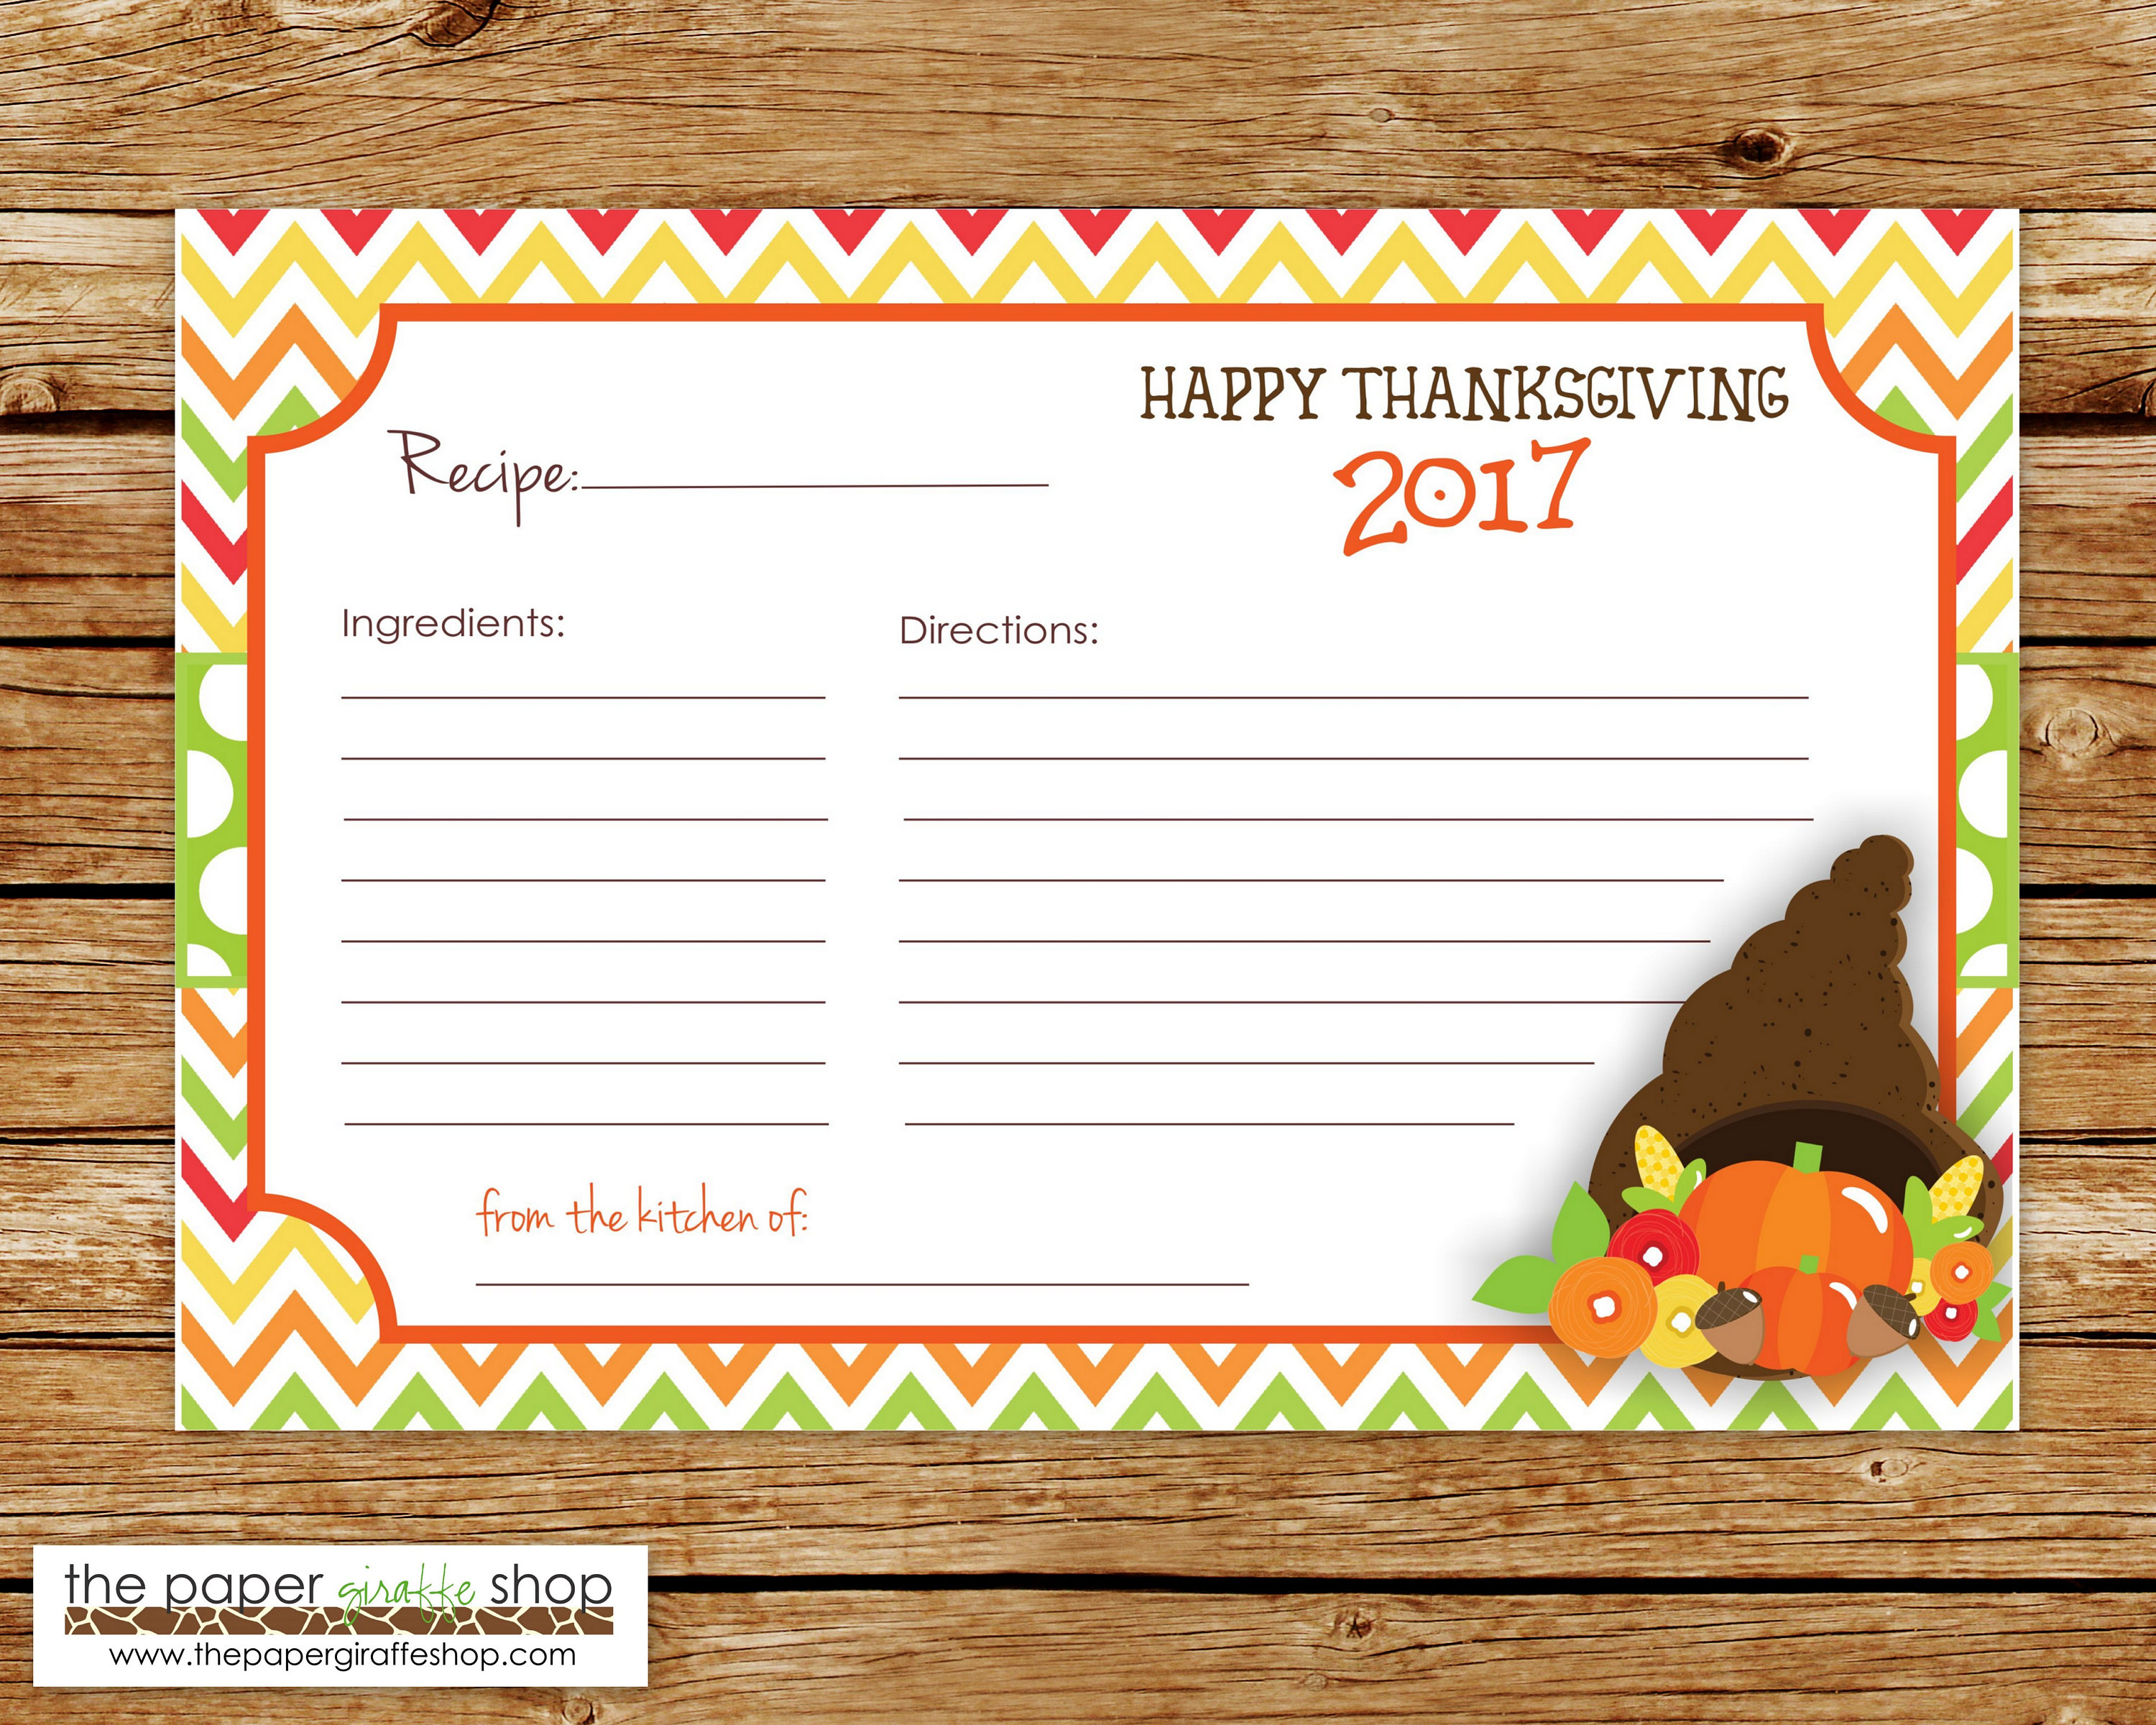 Thanksgiving recipe card 2017 thanksgiving recipe cards zoom kristyandbryce Image collections